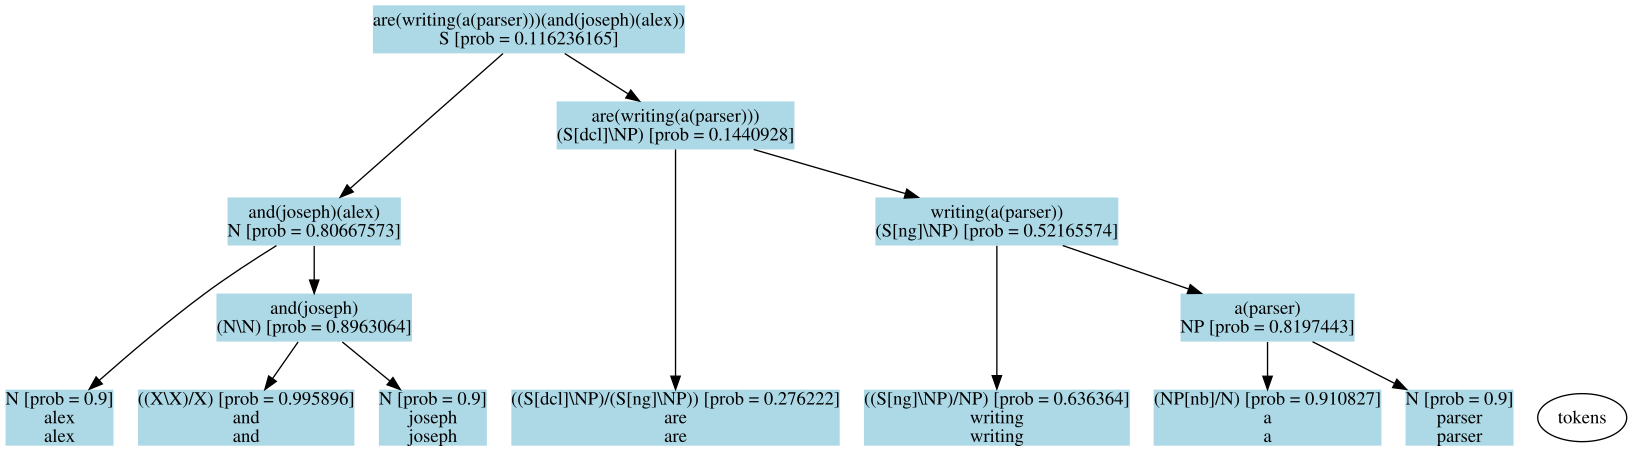 An example syntactic parse tree